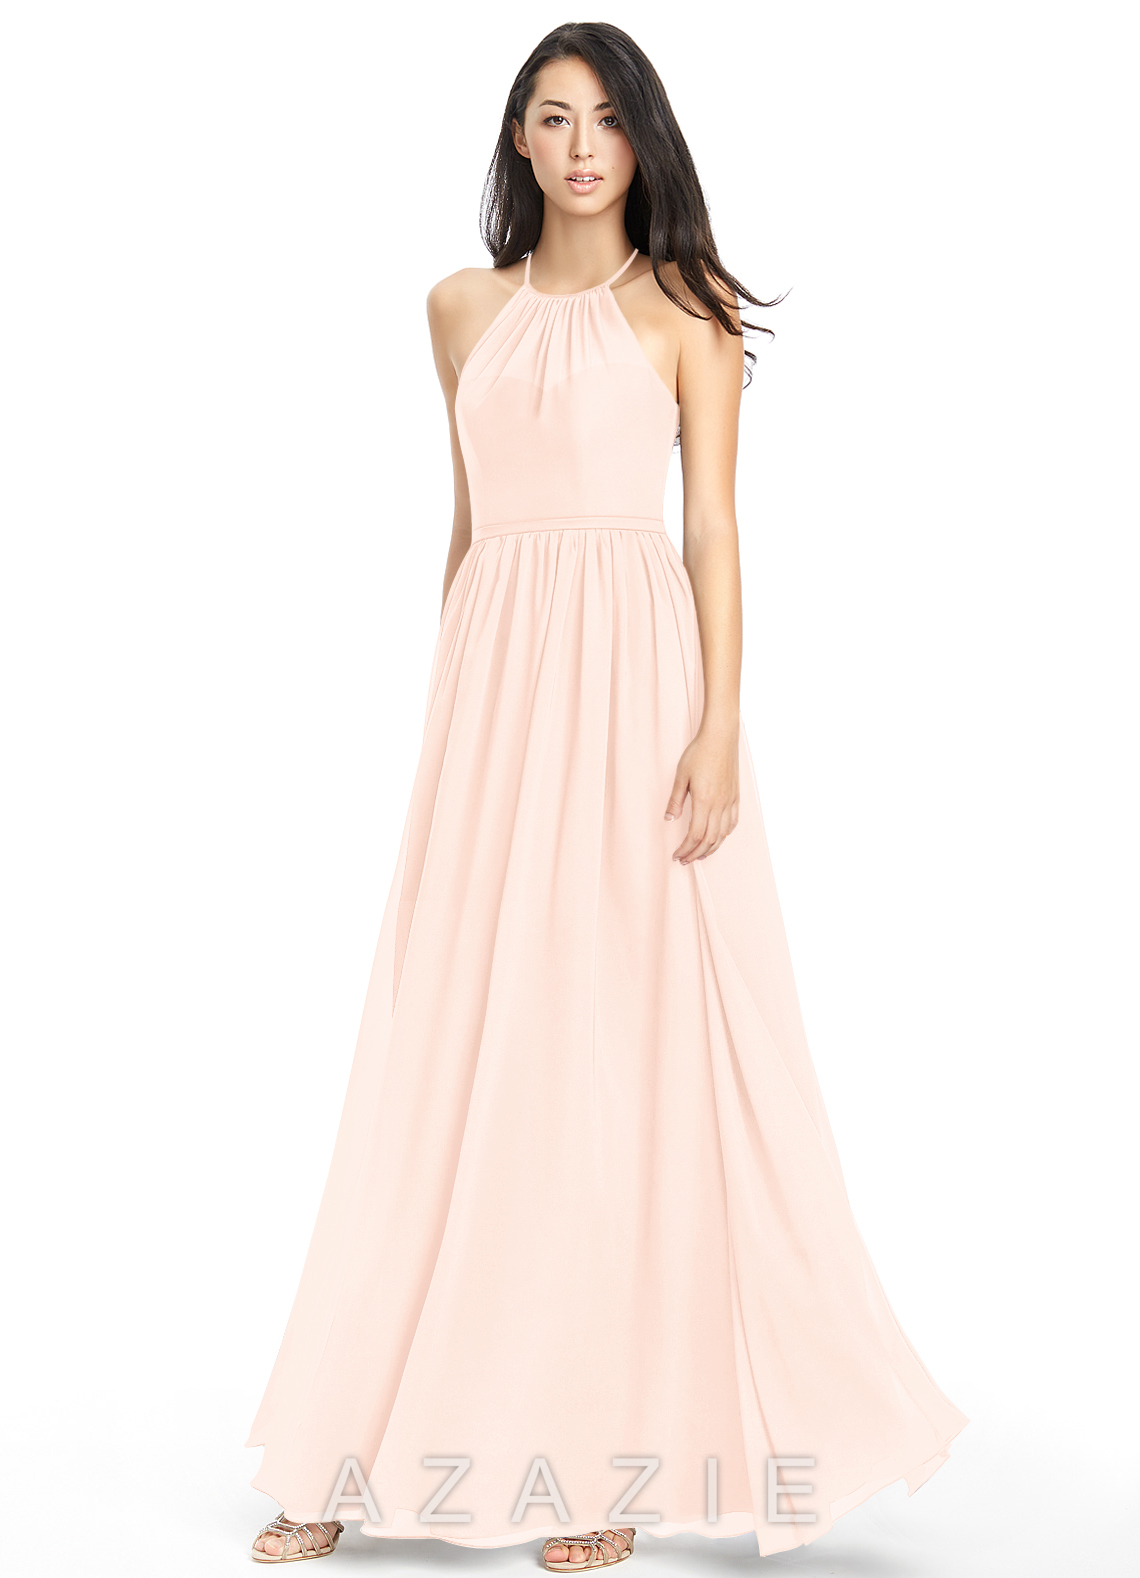 azazie kailyn bridesmaid dress pearl pink azazie